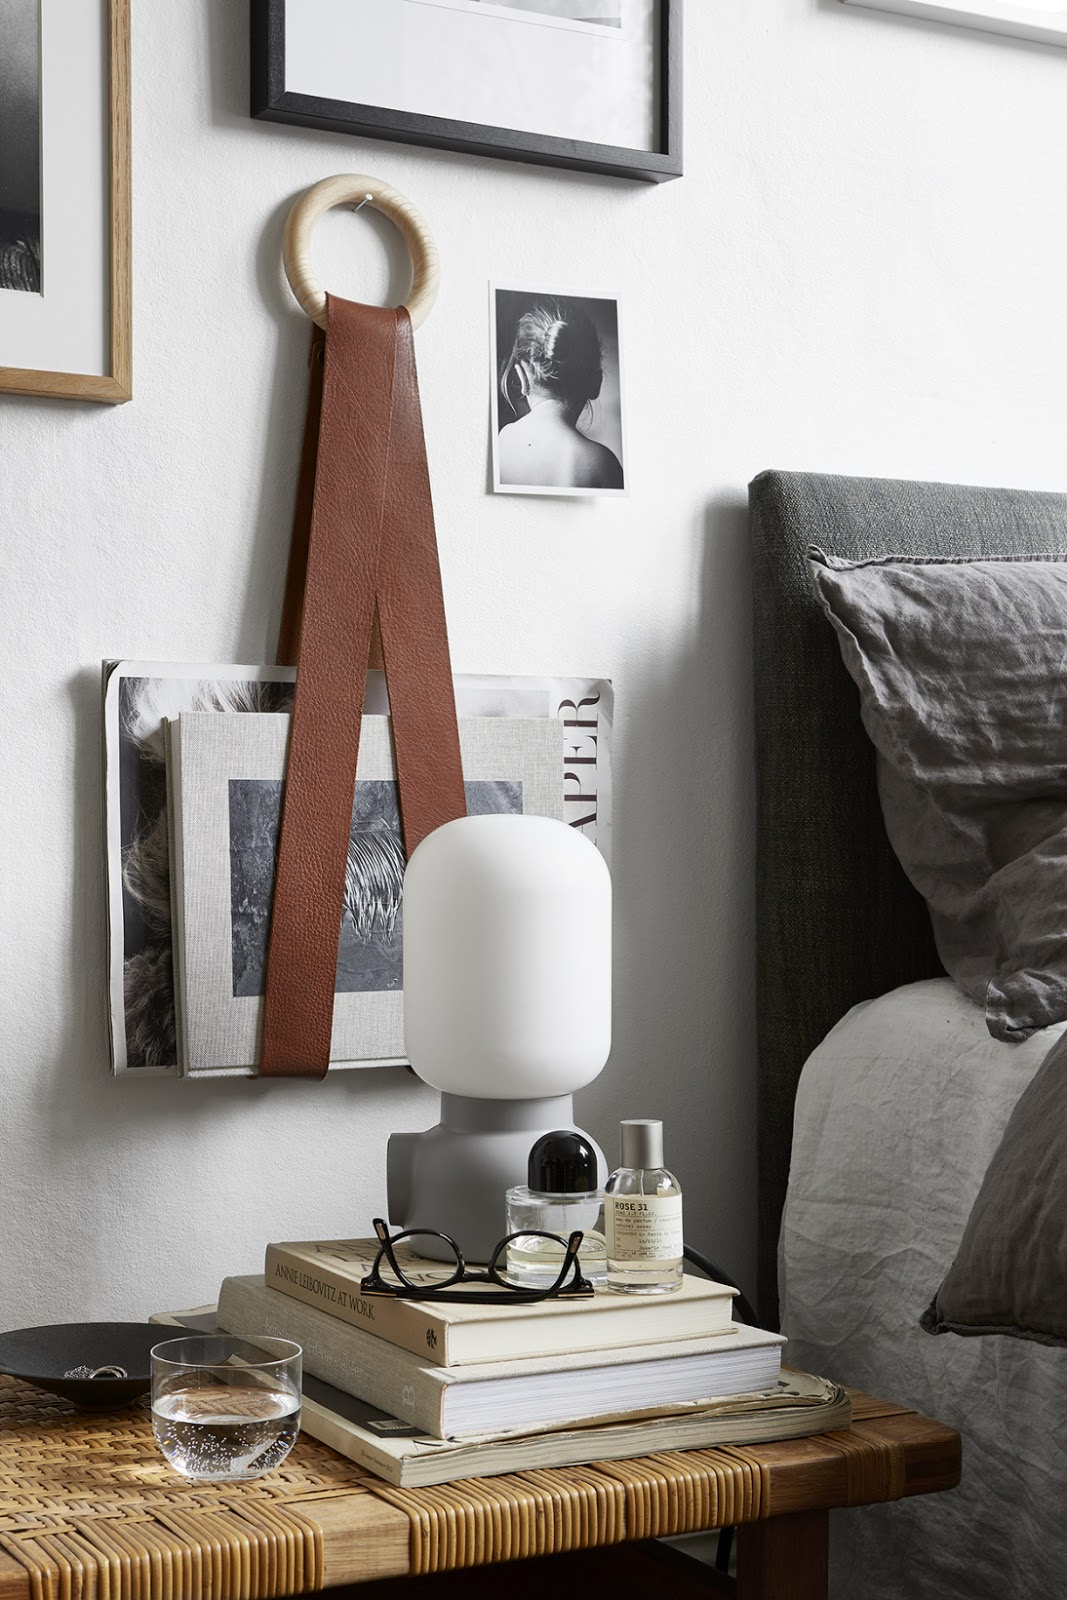 Magazine Decoration Interieur Design how to organize your magazines in a stylish way | slow